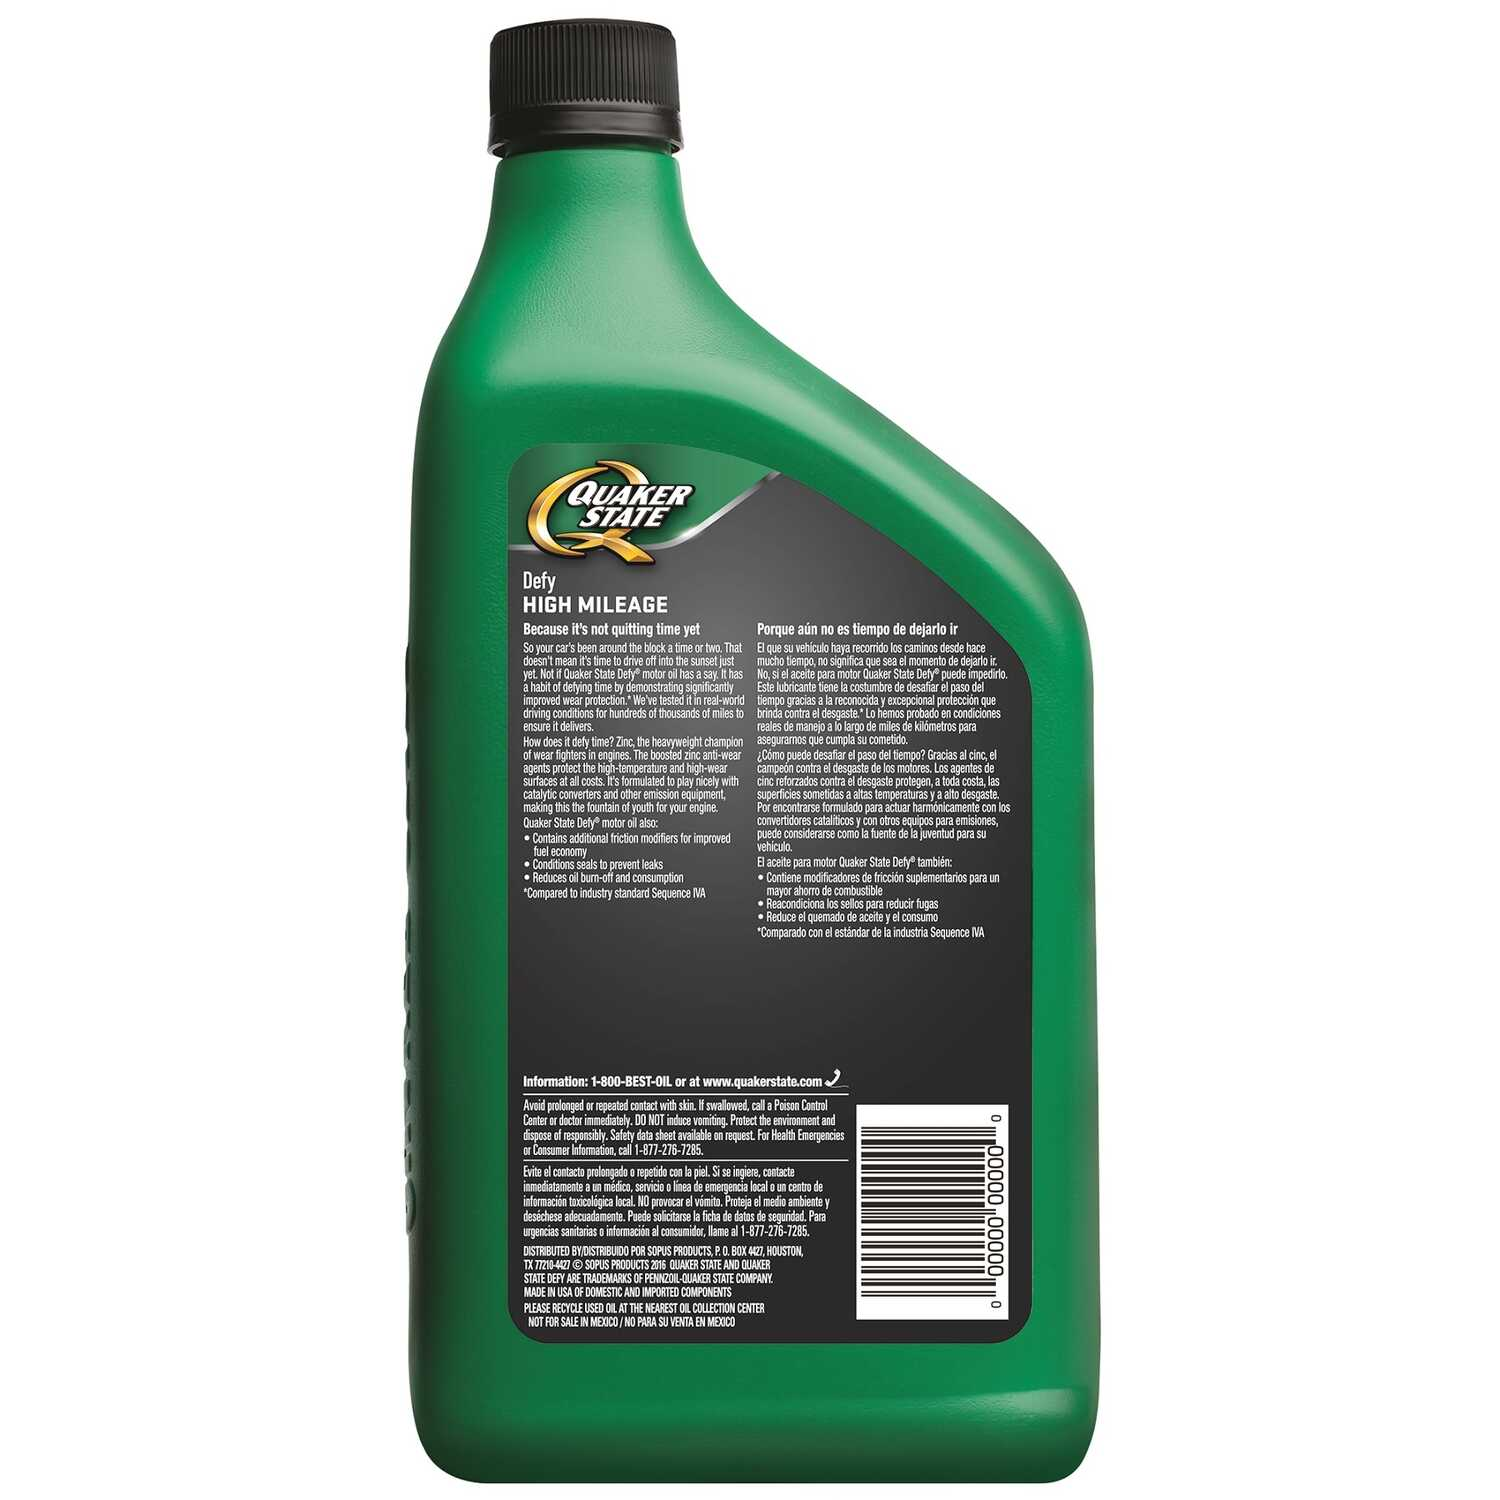 Quaker State  Defy  10W-30  4 Cycle Engine  Motor Oil  1 qt.